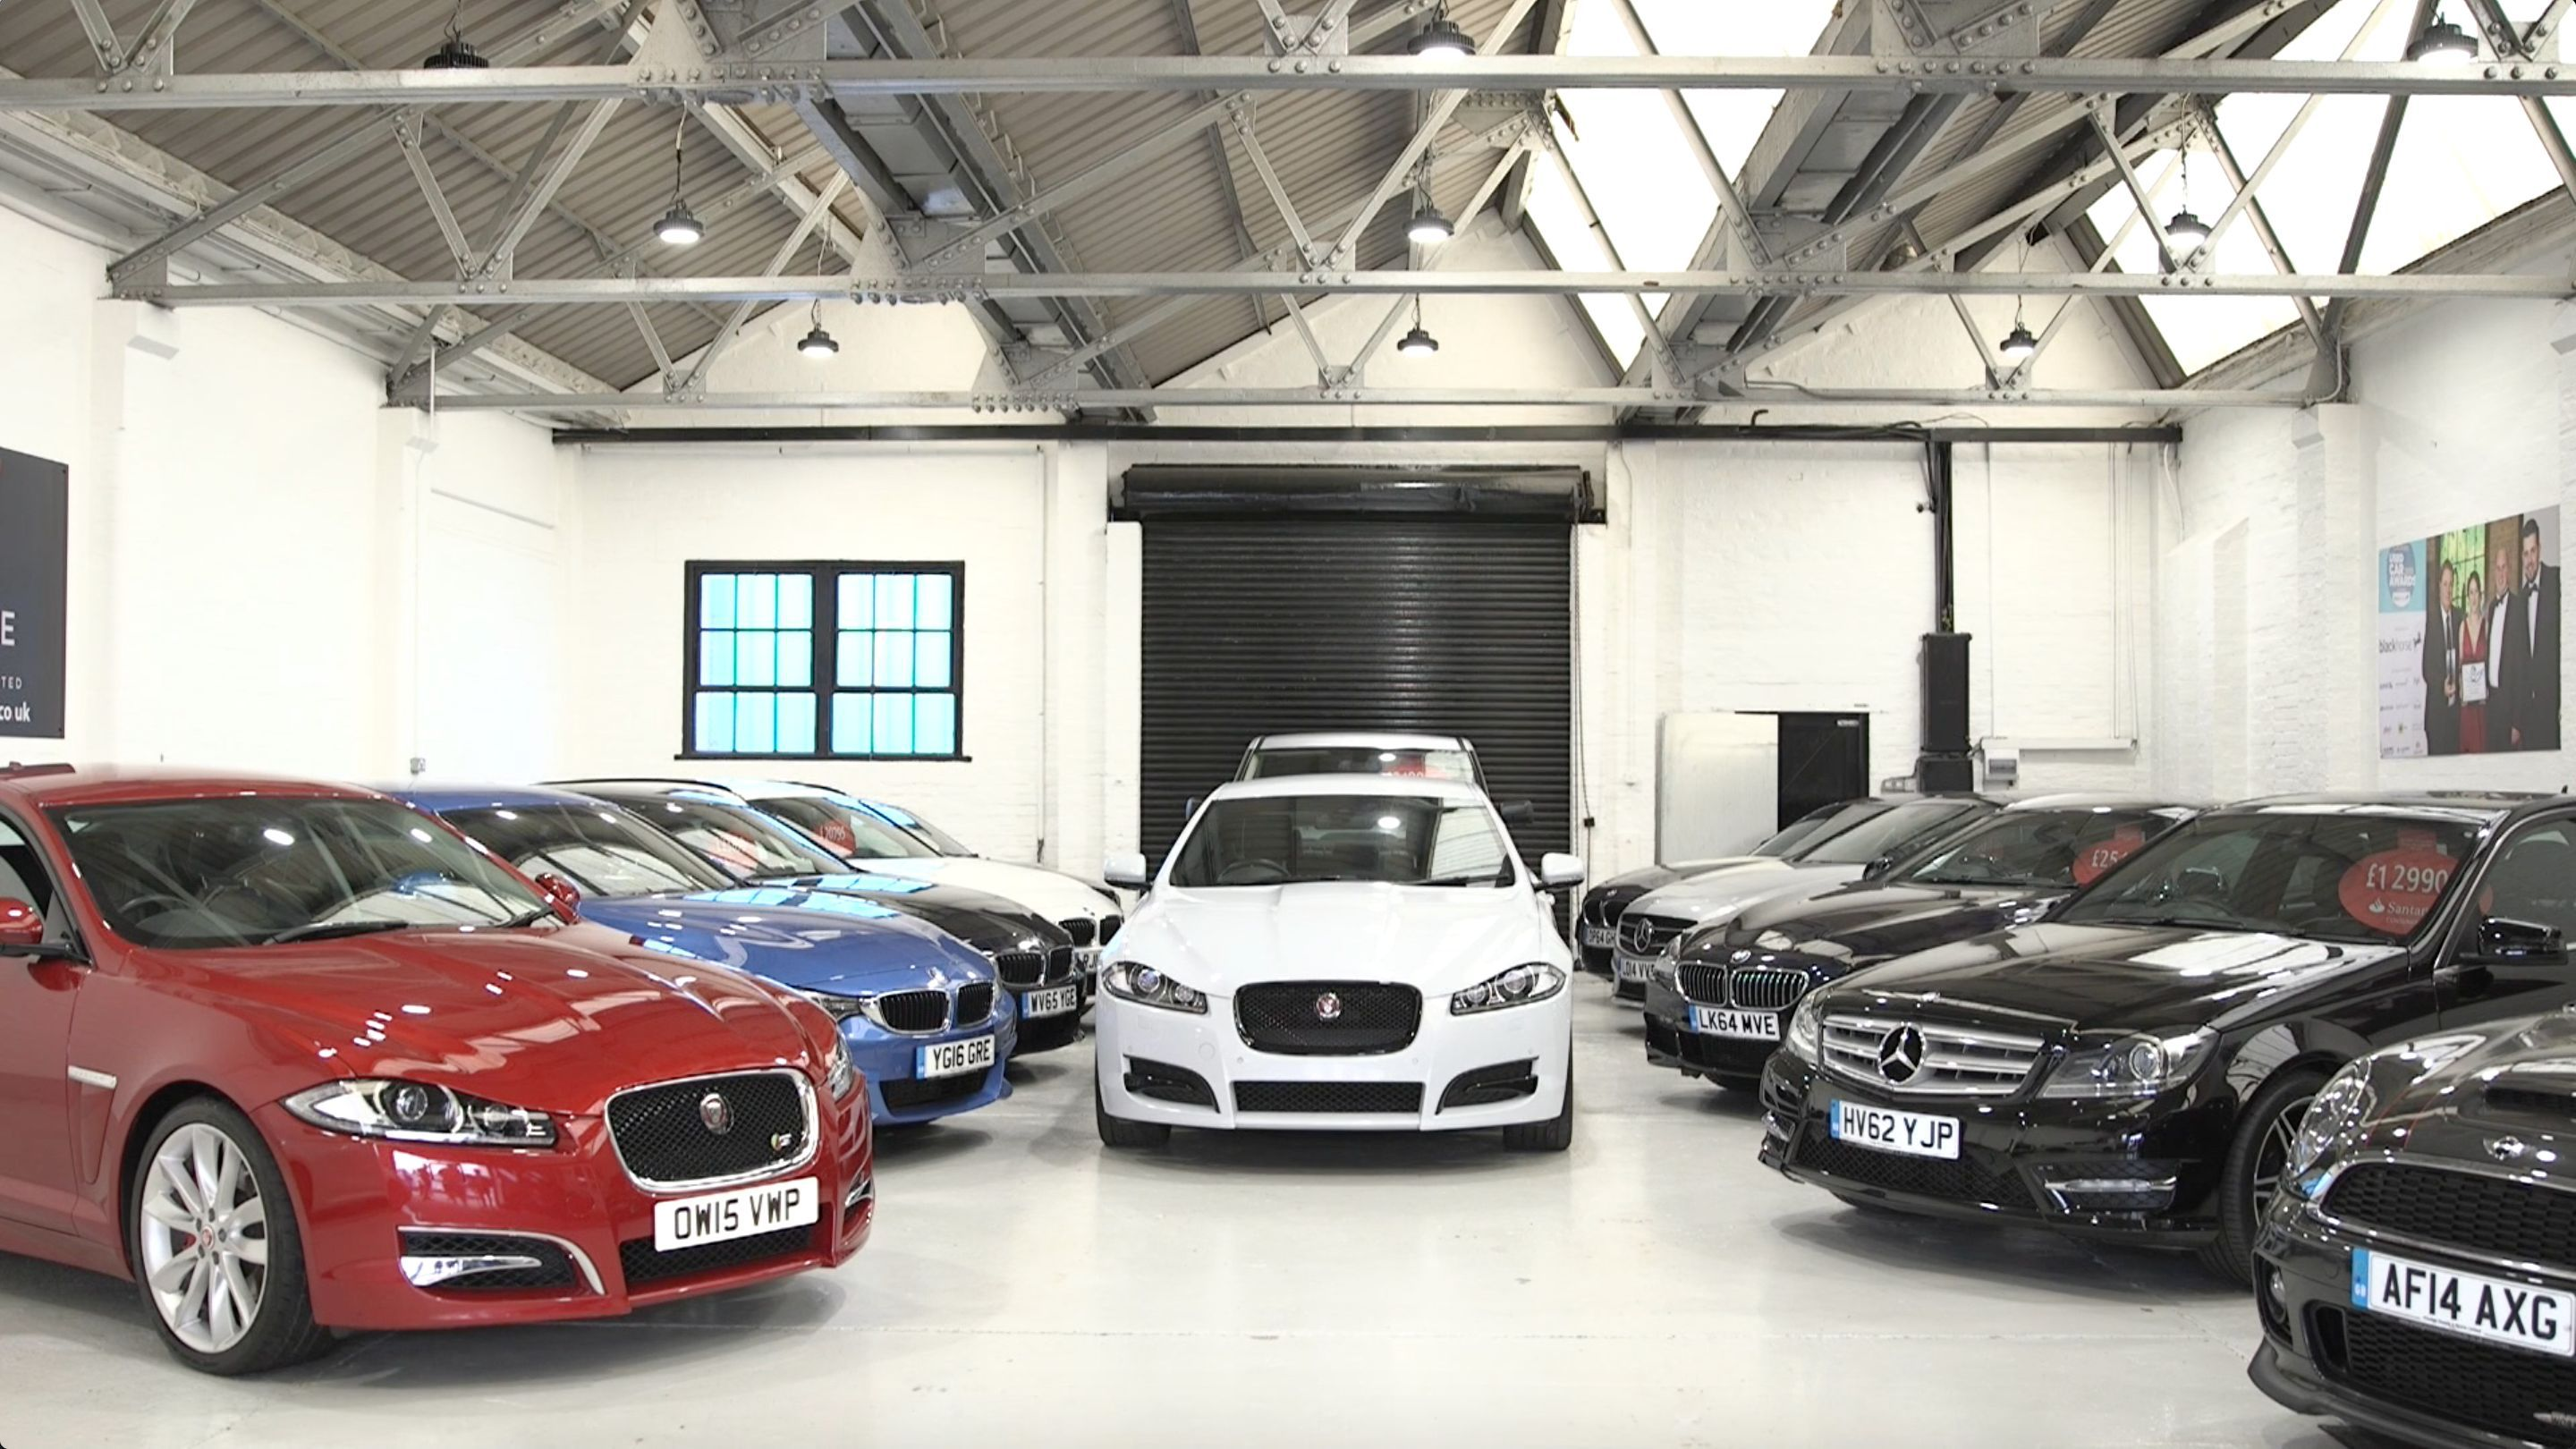 cars in a workshop